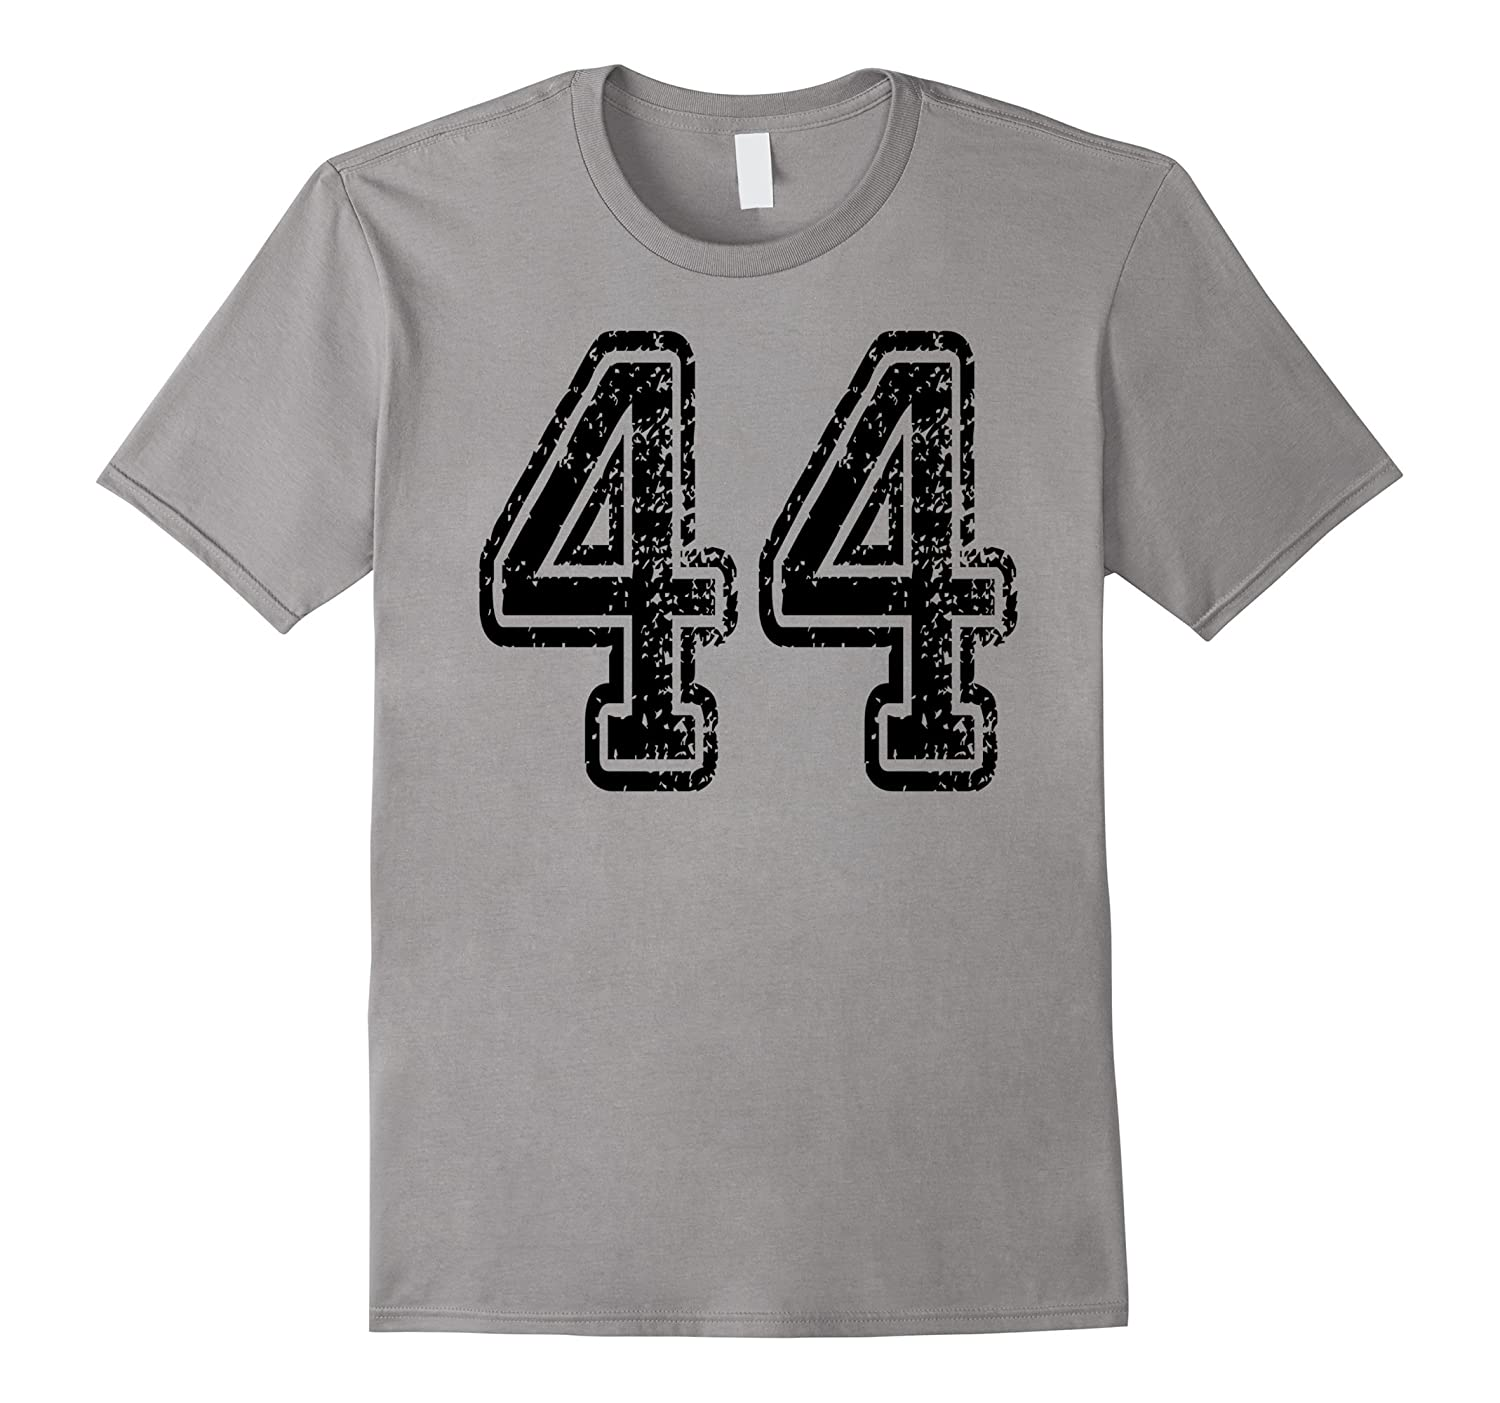 Number 44 T-Shirt - Grungy Sports Team Tees - both sides-CL